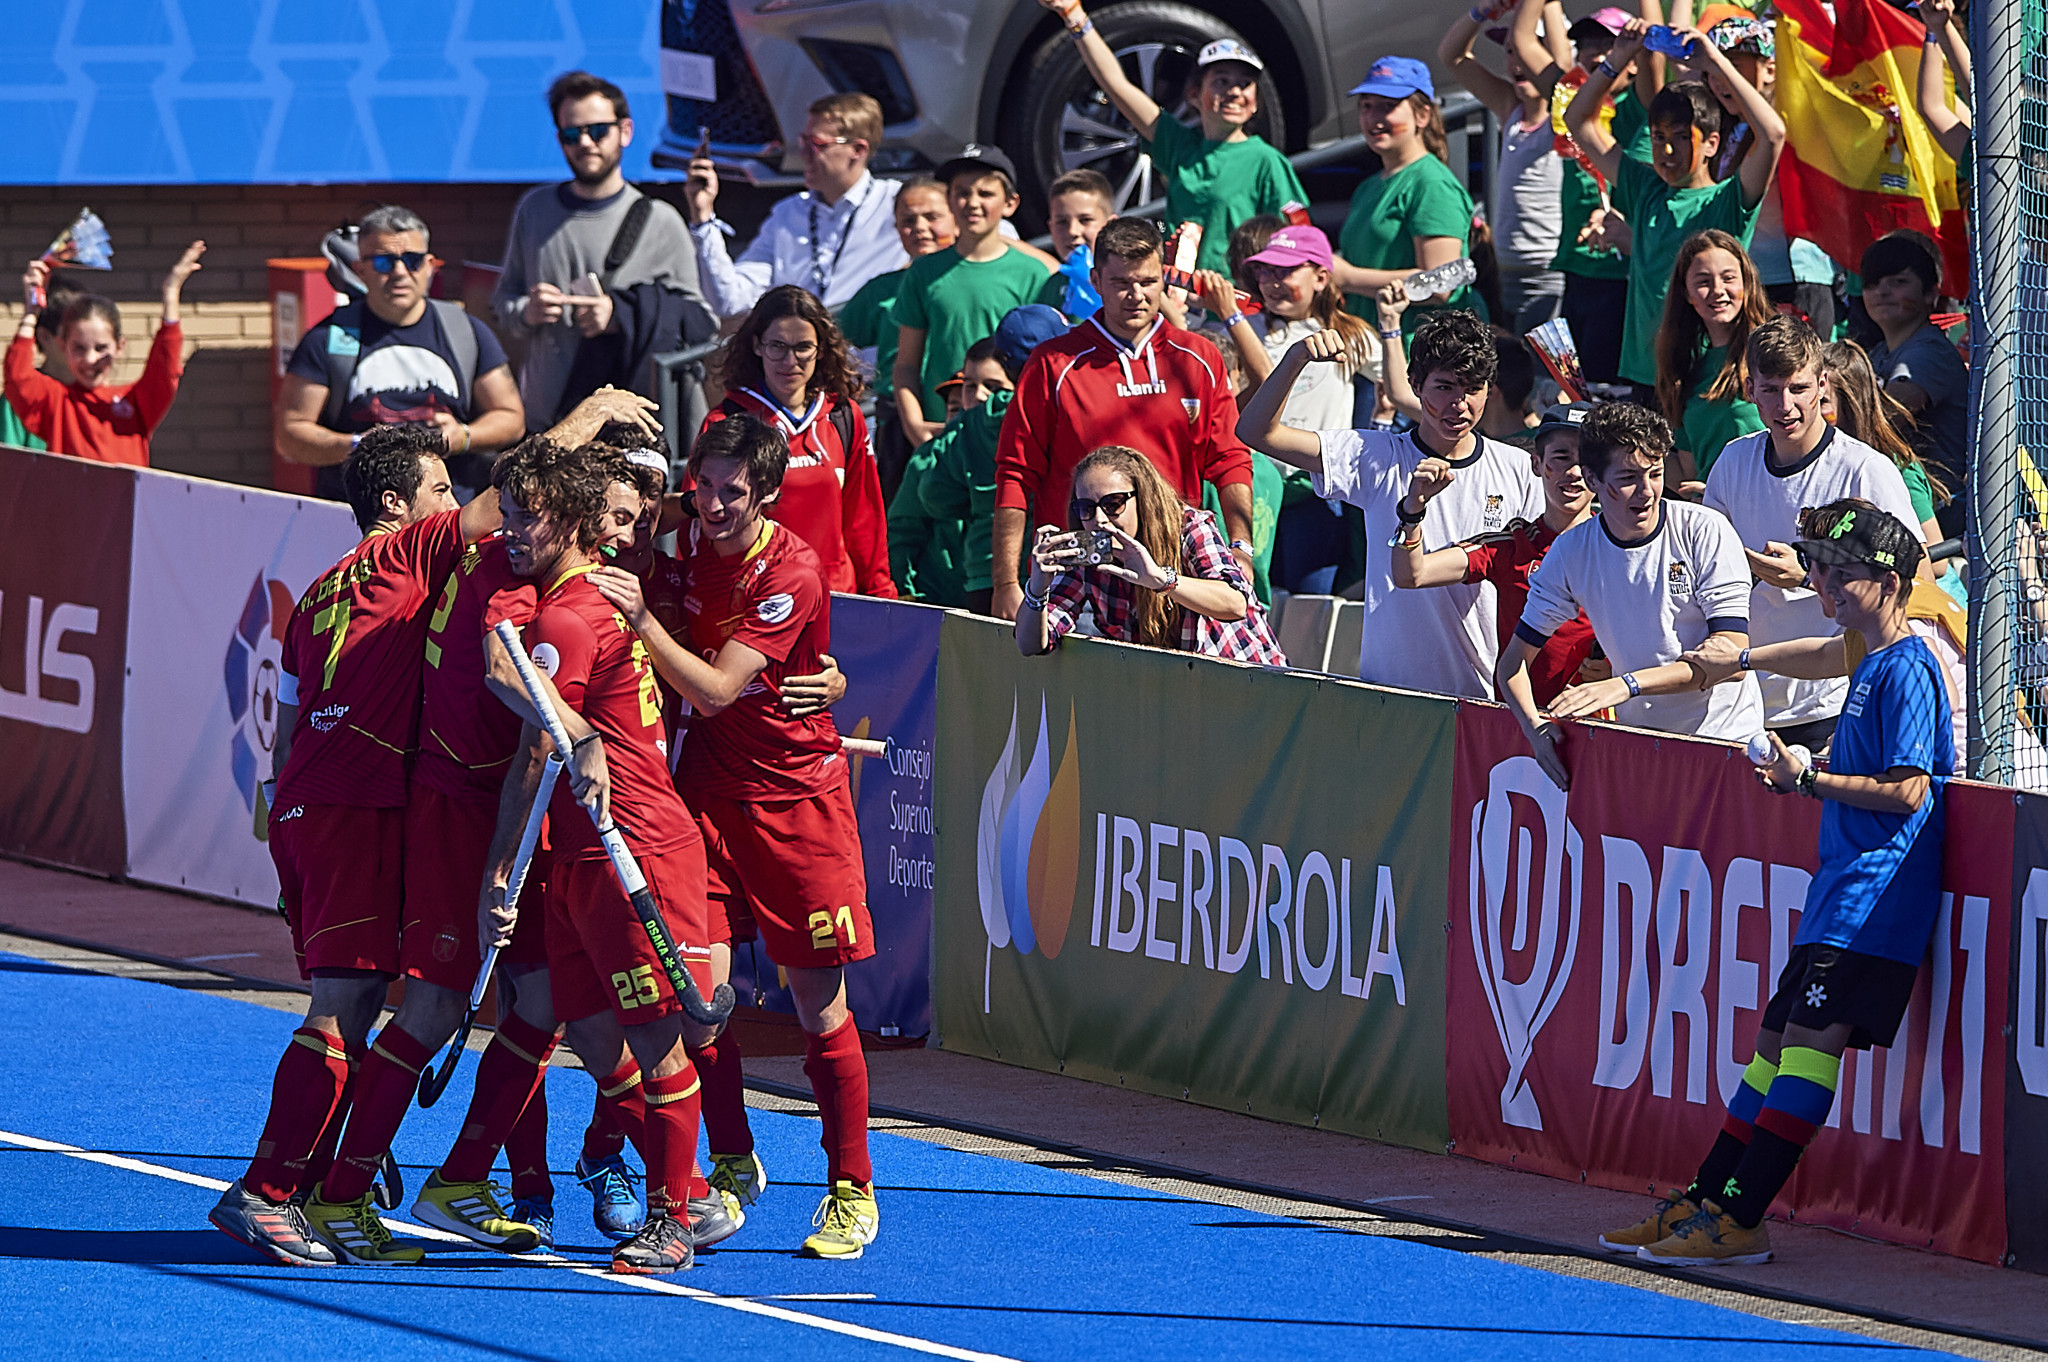 Spain defeated Germany on penalties in a Men's International Hockey Federation Pro League clash today to continue their remarkable shoot-out record ©Getty Images